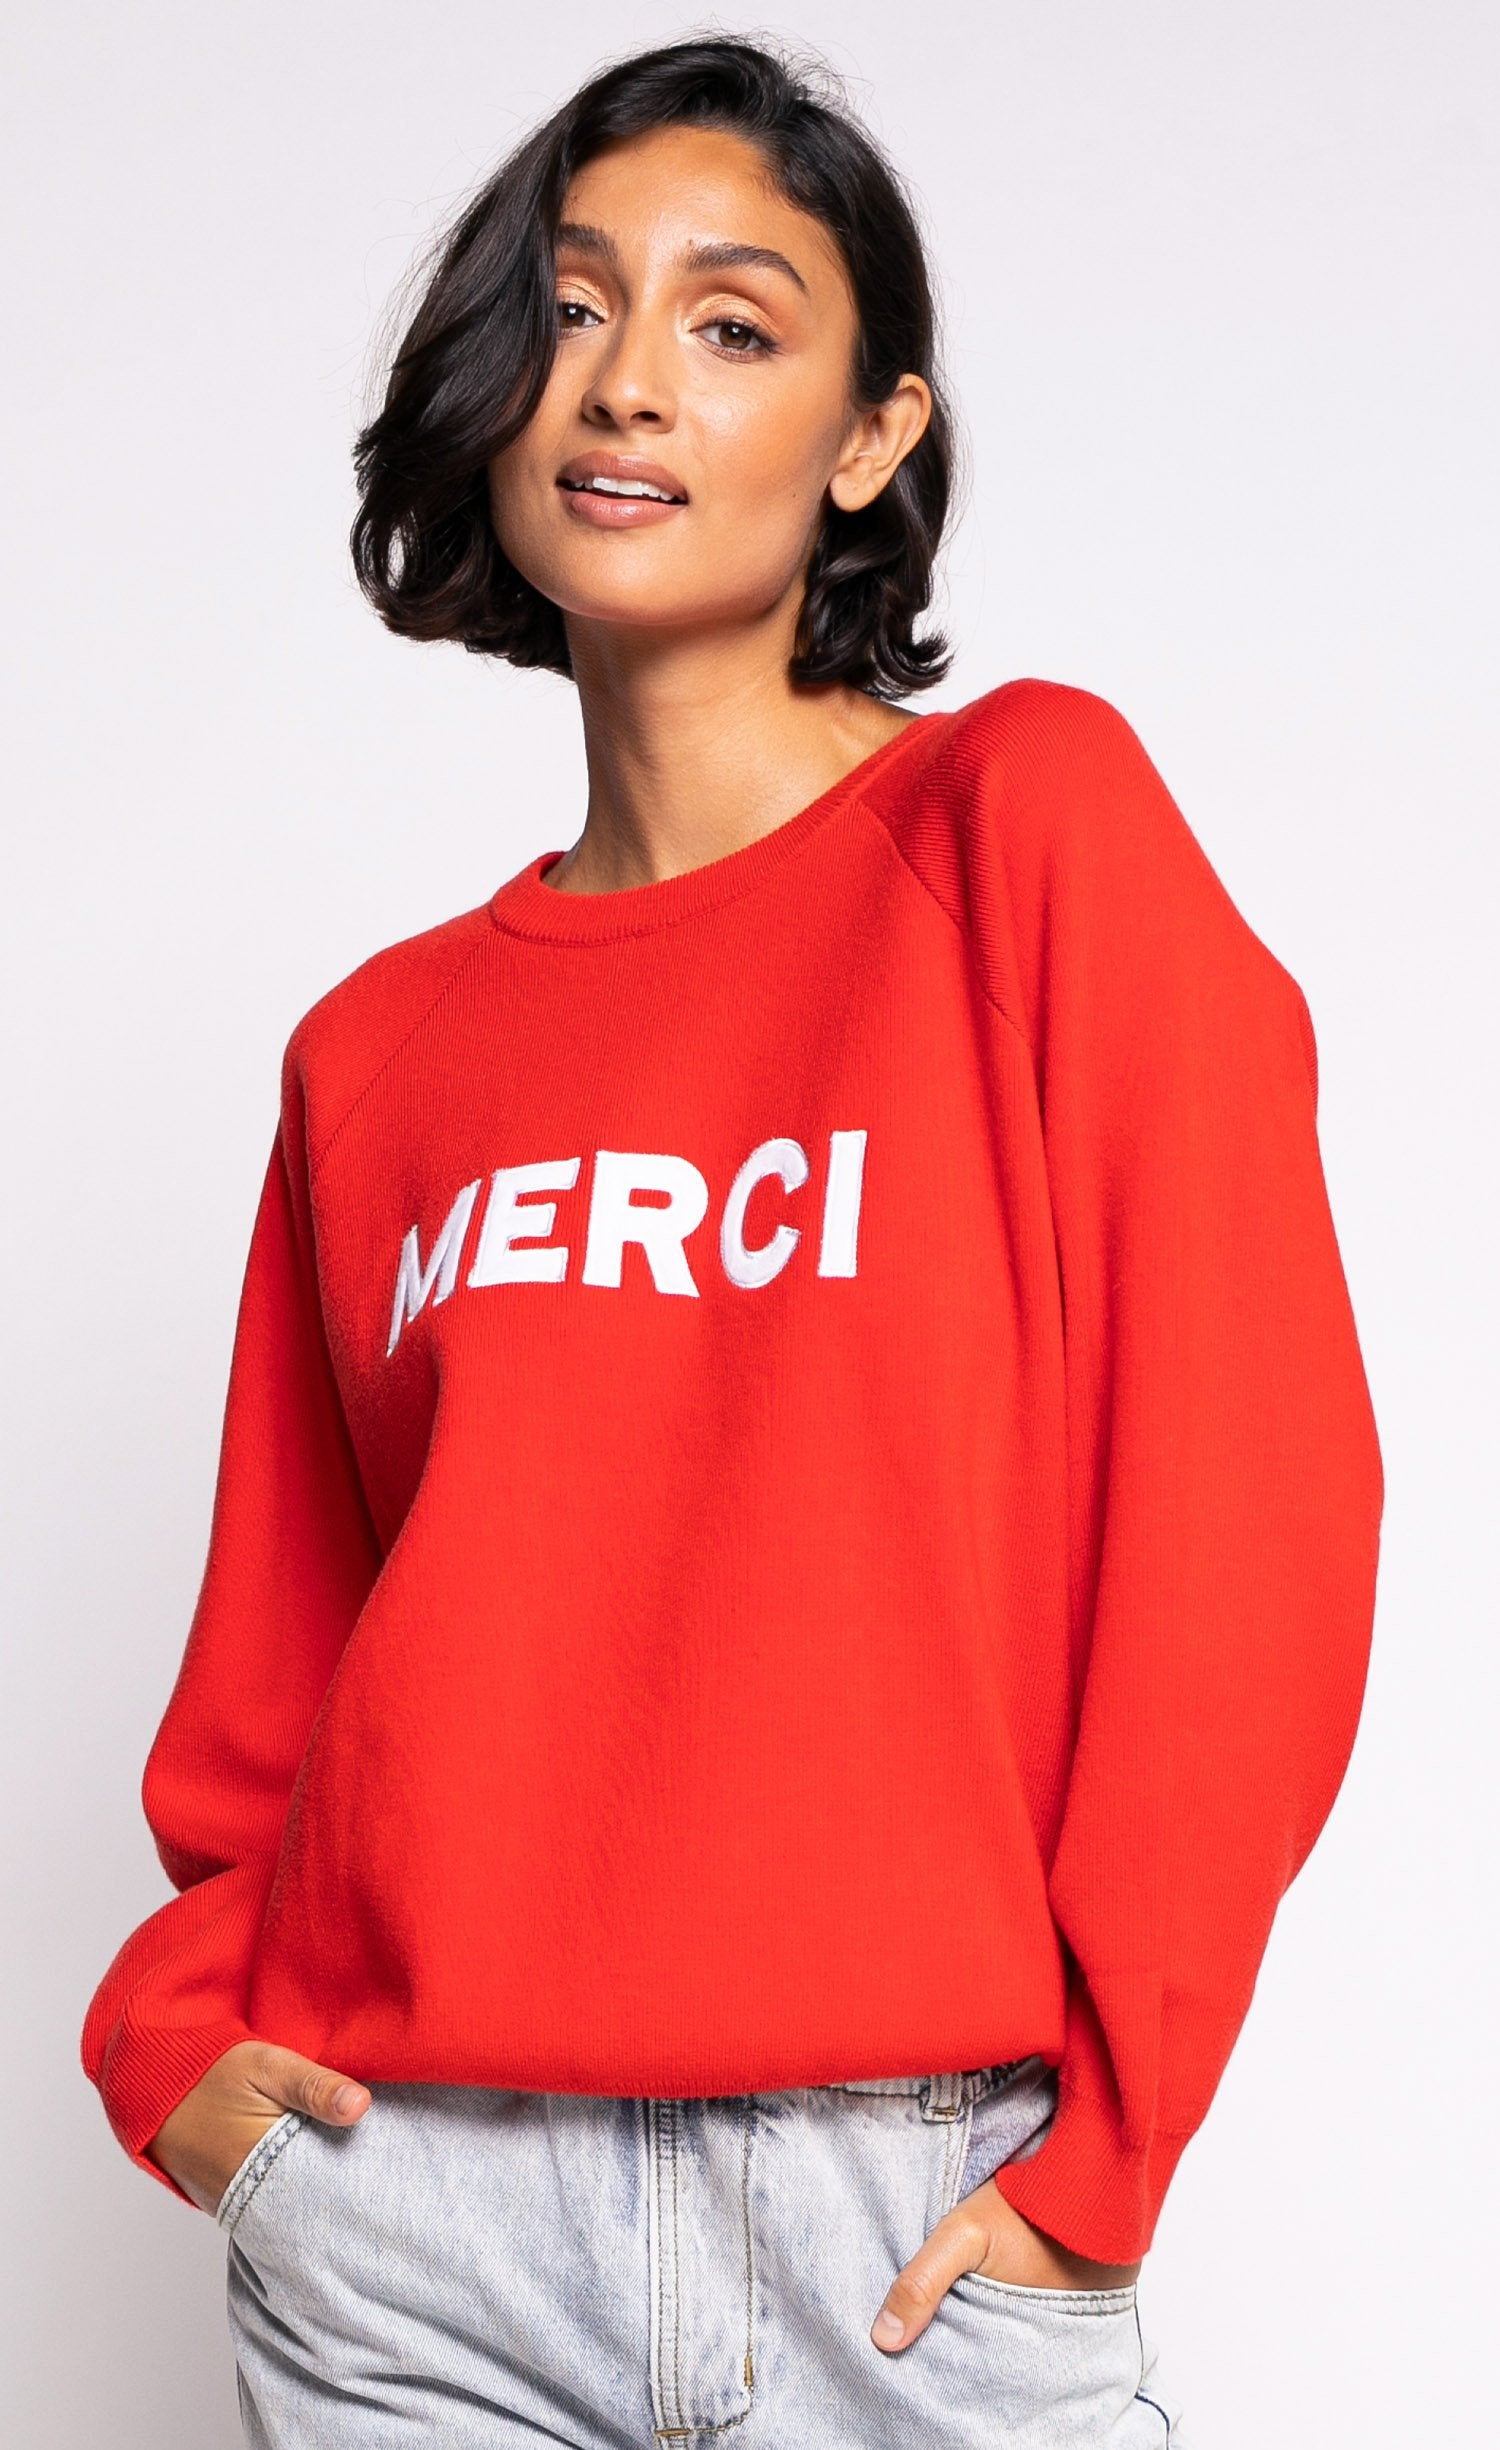 The Merci Sweater